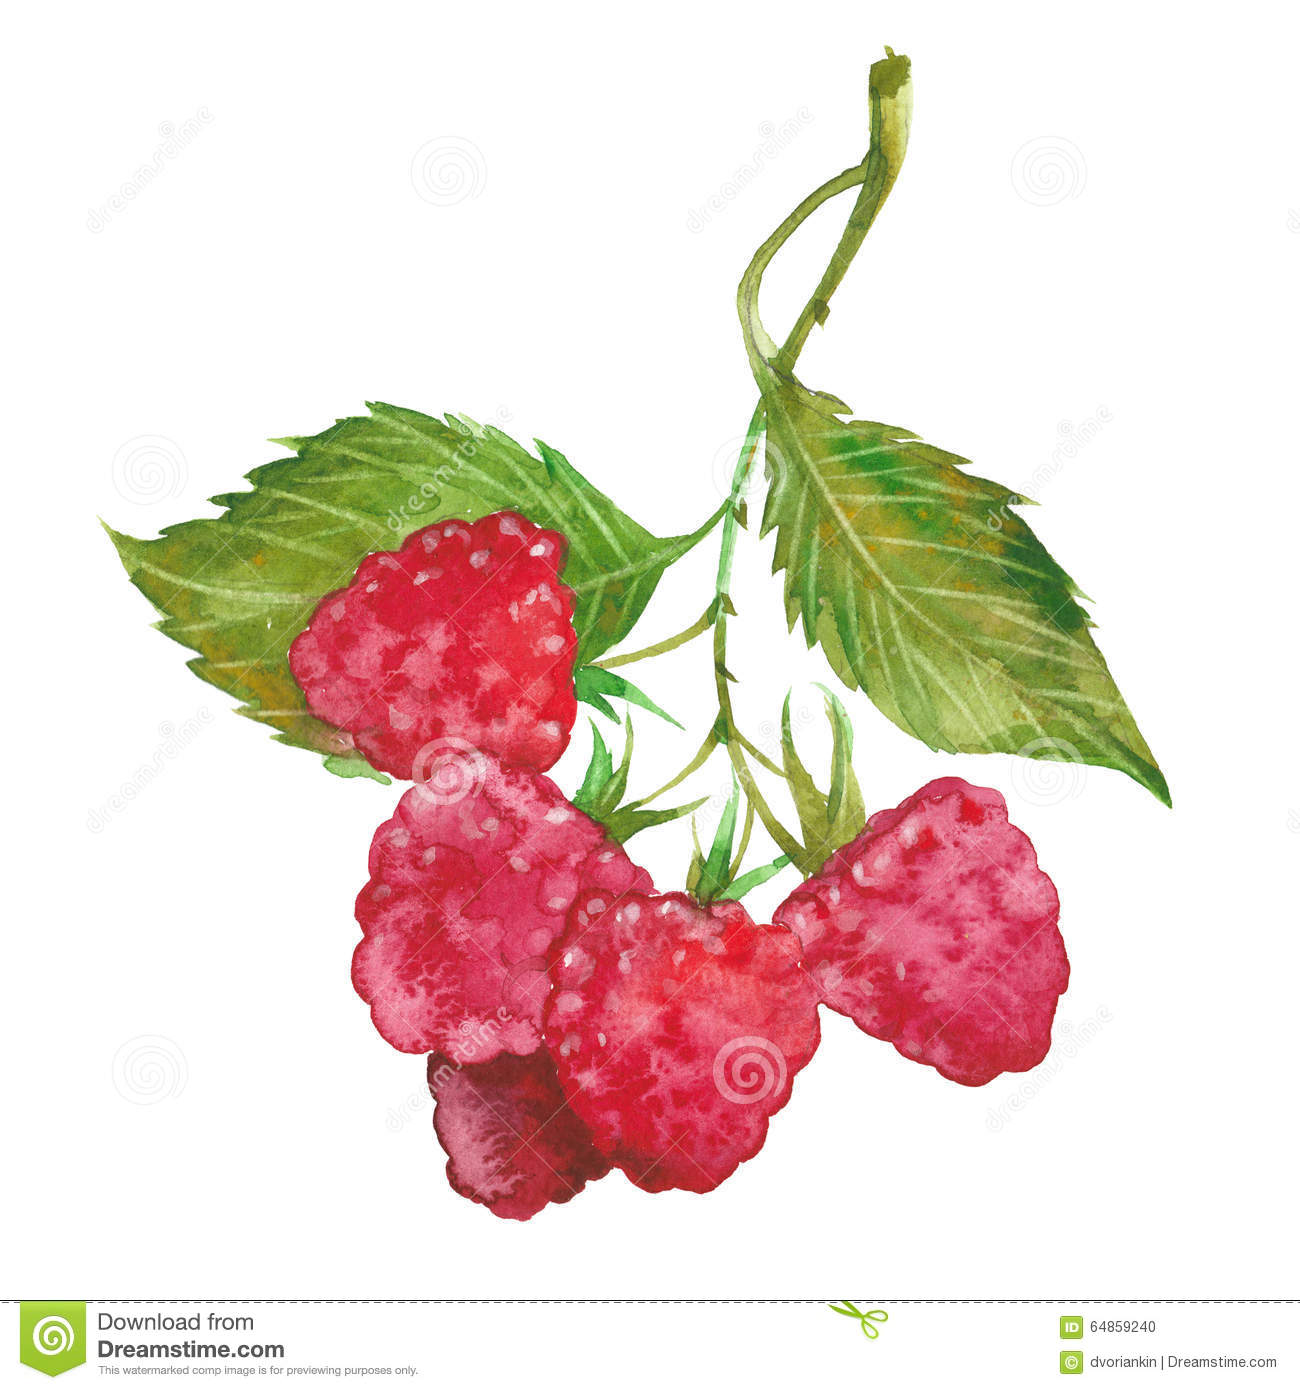 Watercolor Red Raspberry Stock Illustration - Image: 64859240